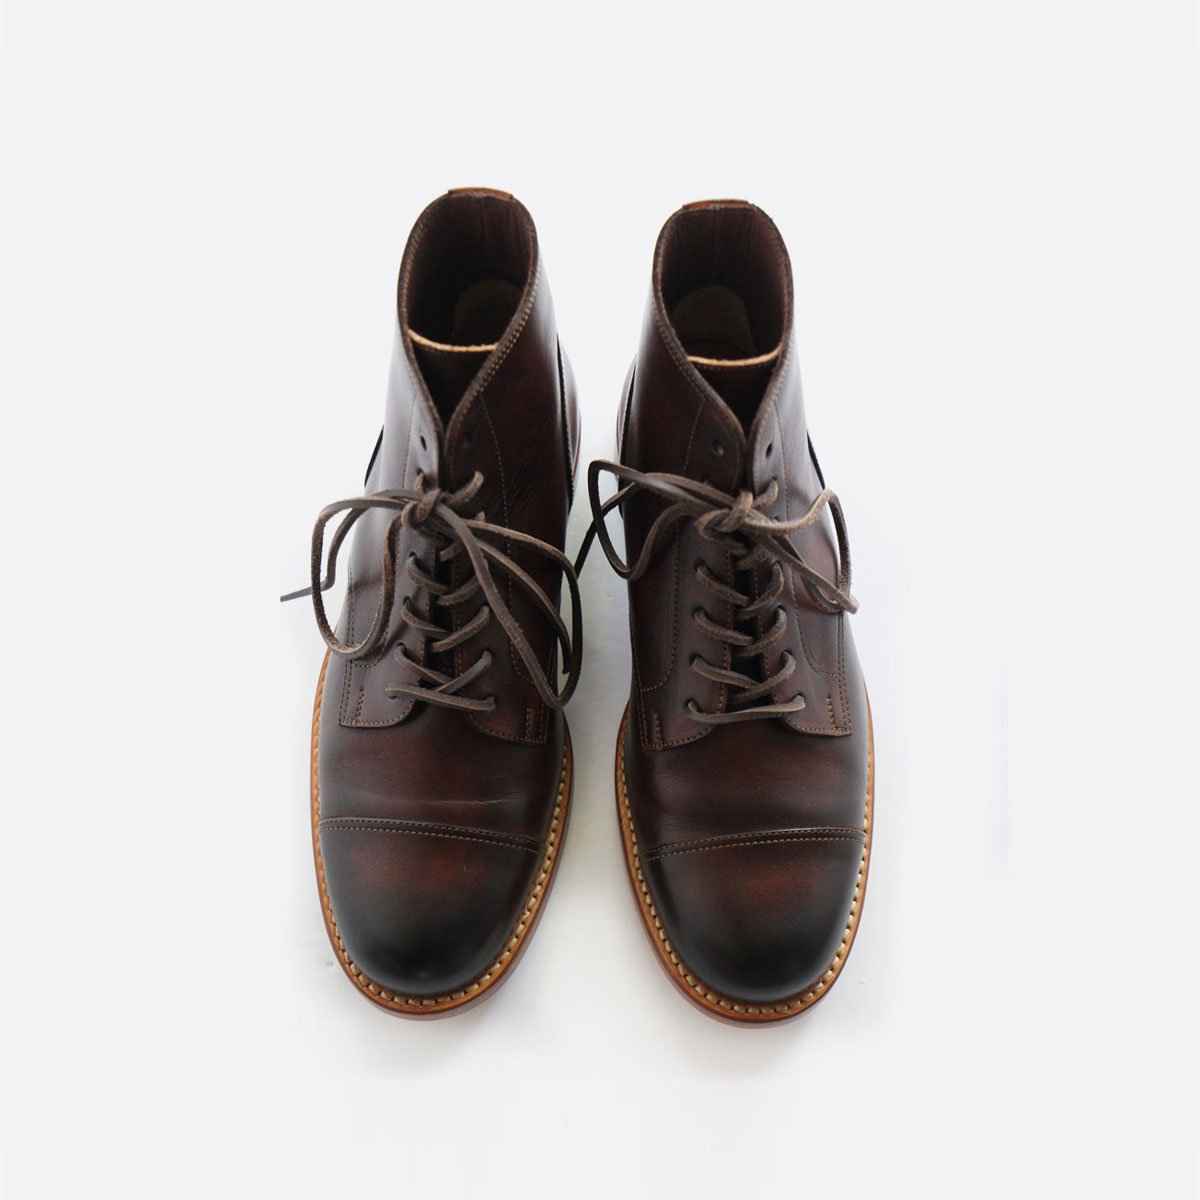 MOTO STRAIGHT TIP Lace-up BOOTS #1500 (BROWN)2